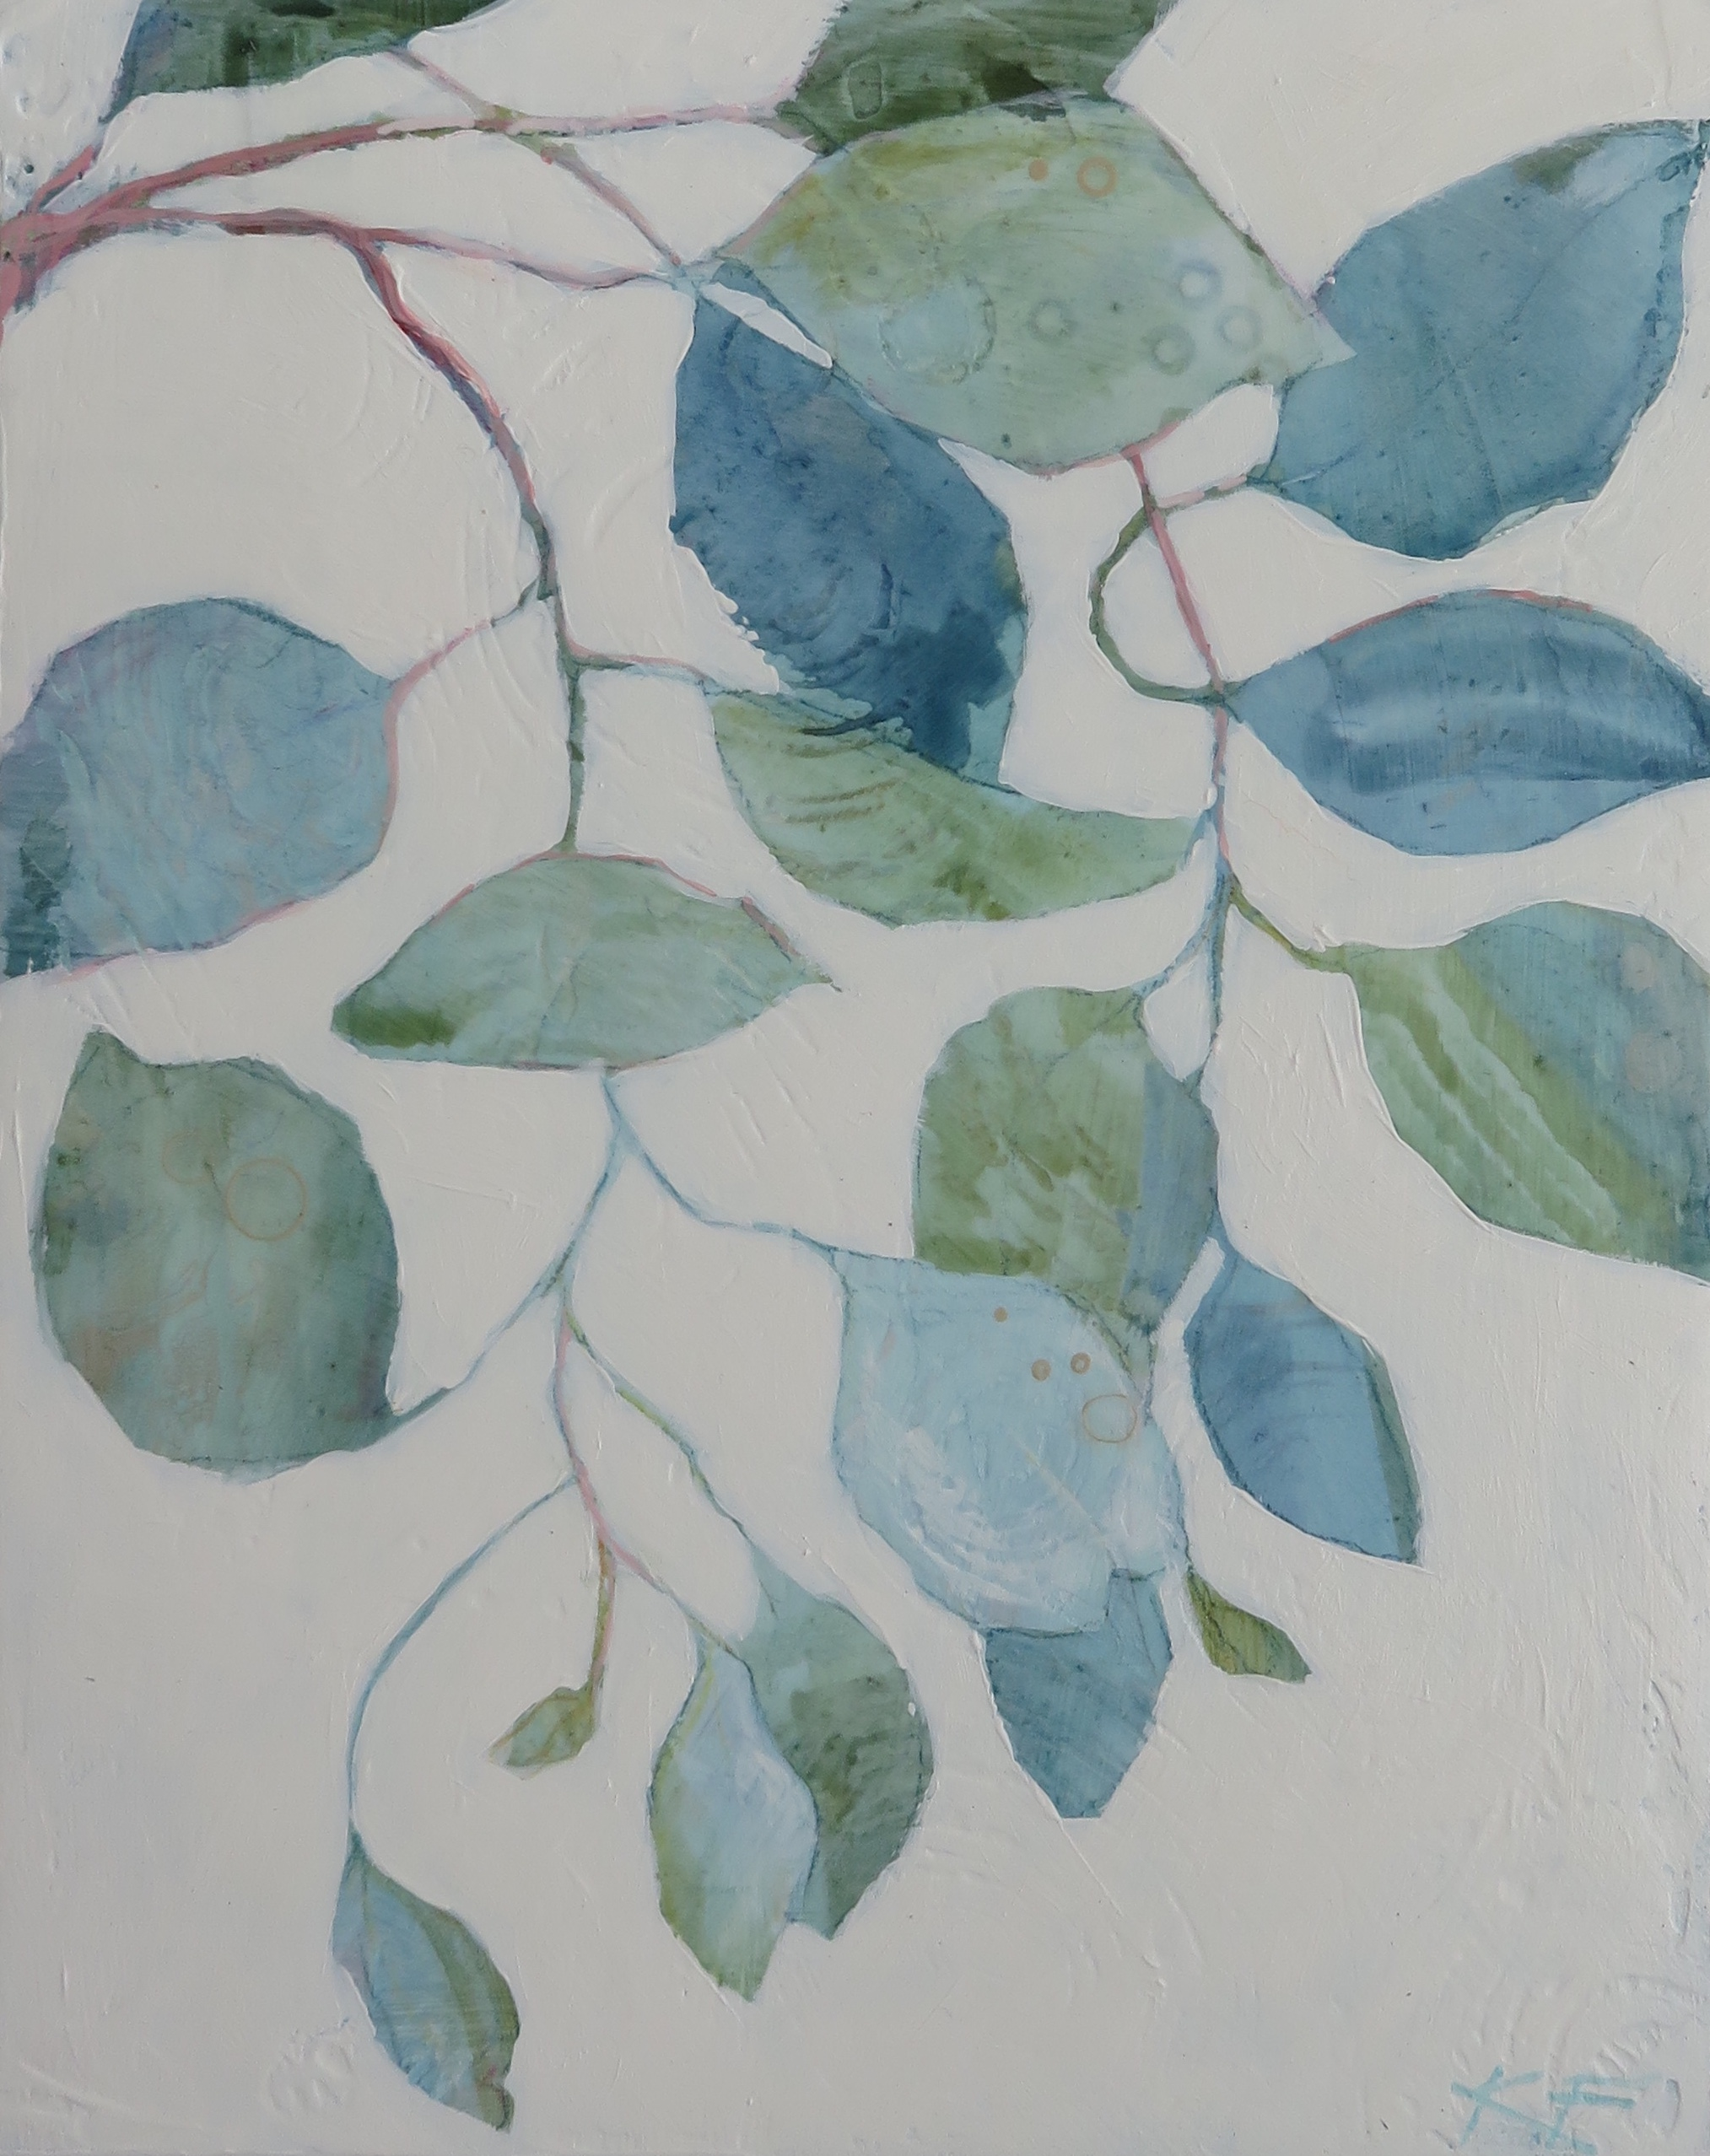 Leaf Patterns I, 2018